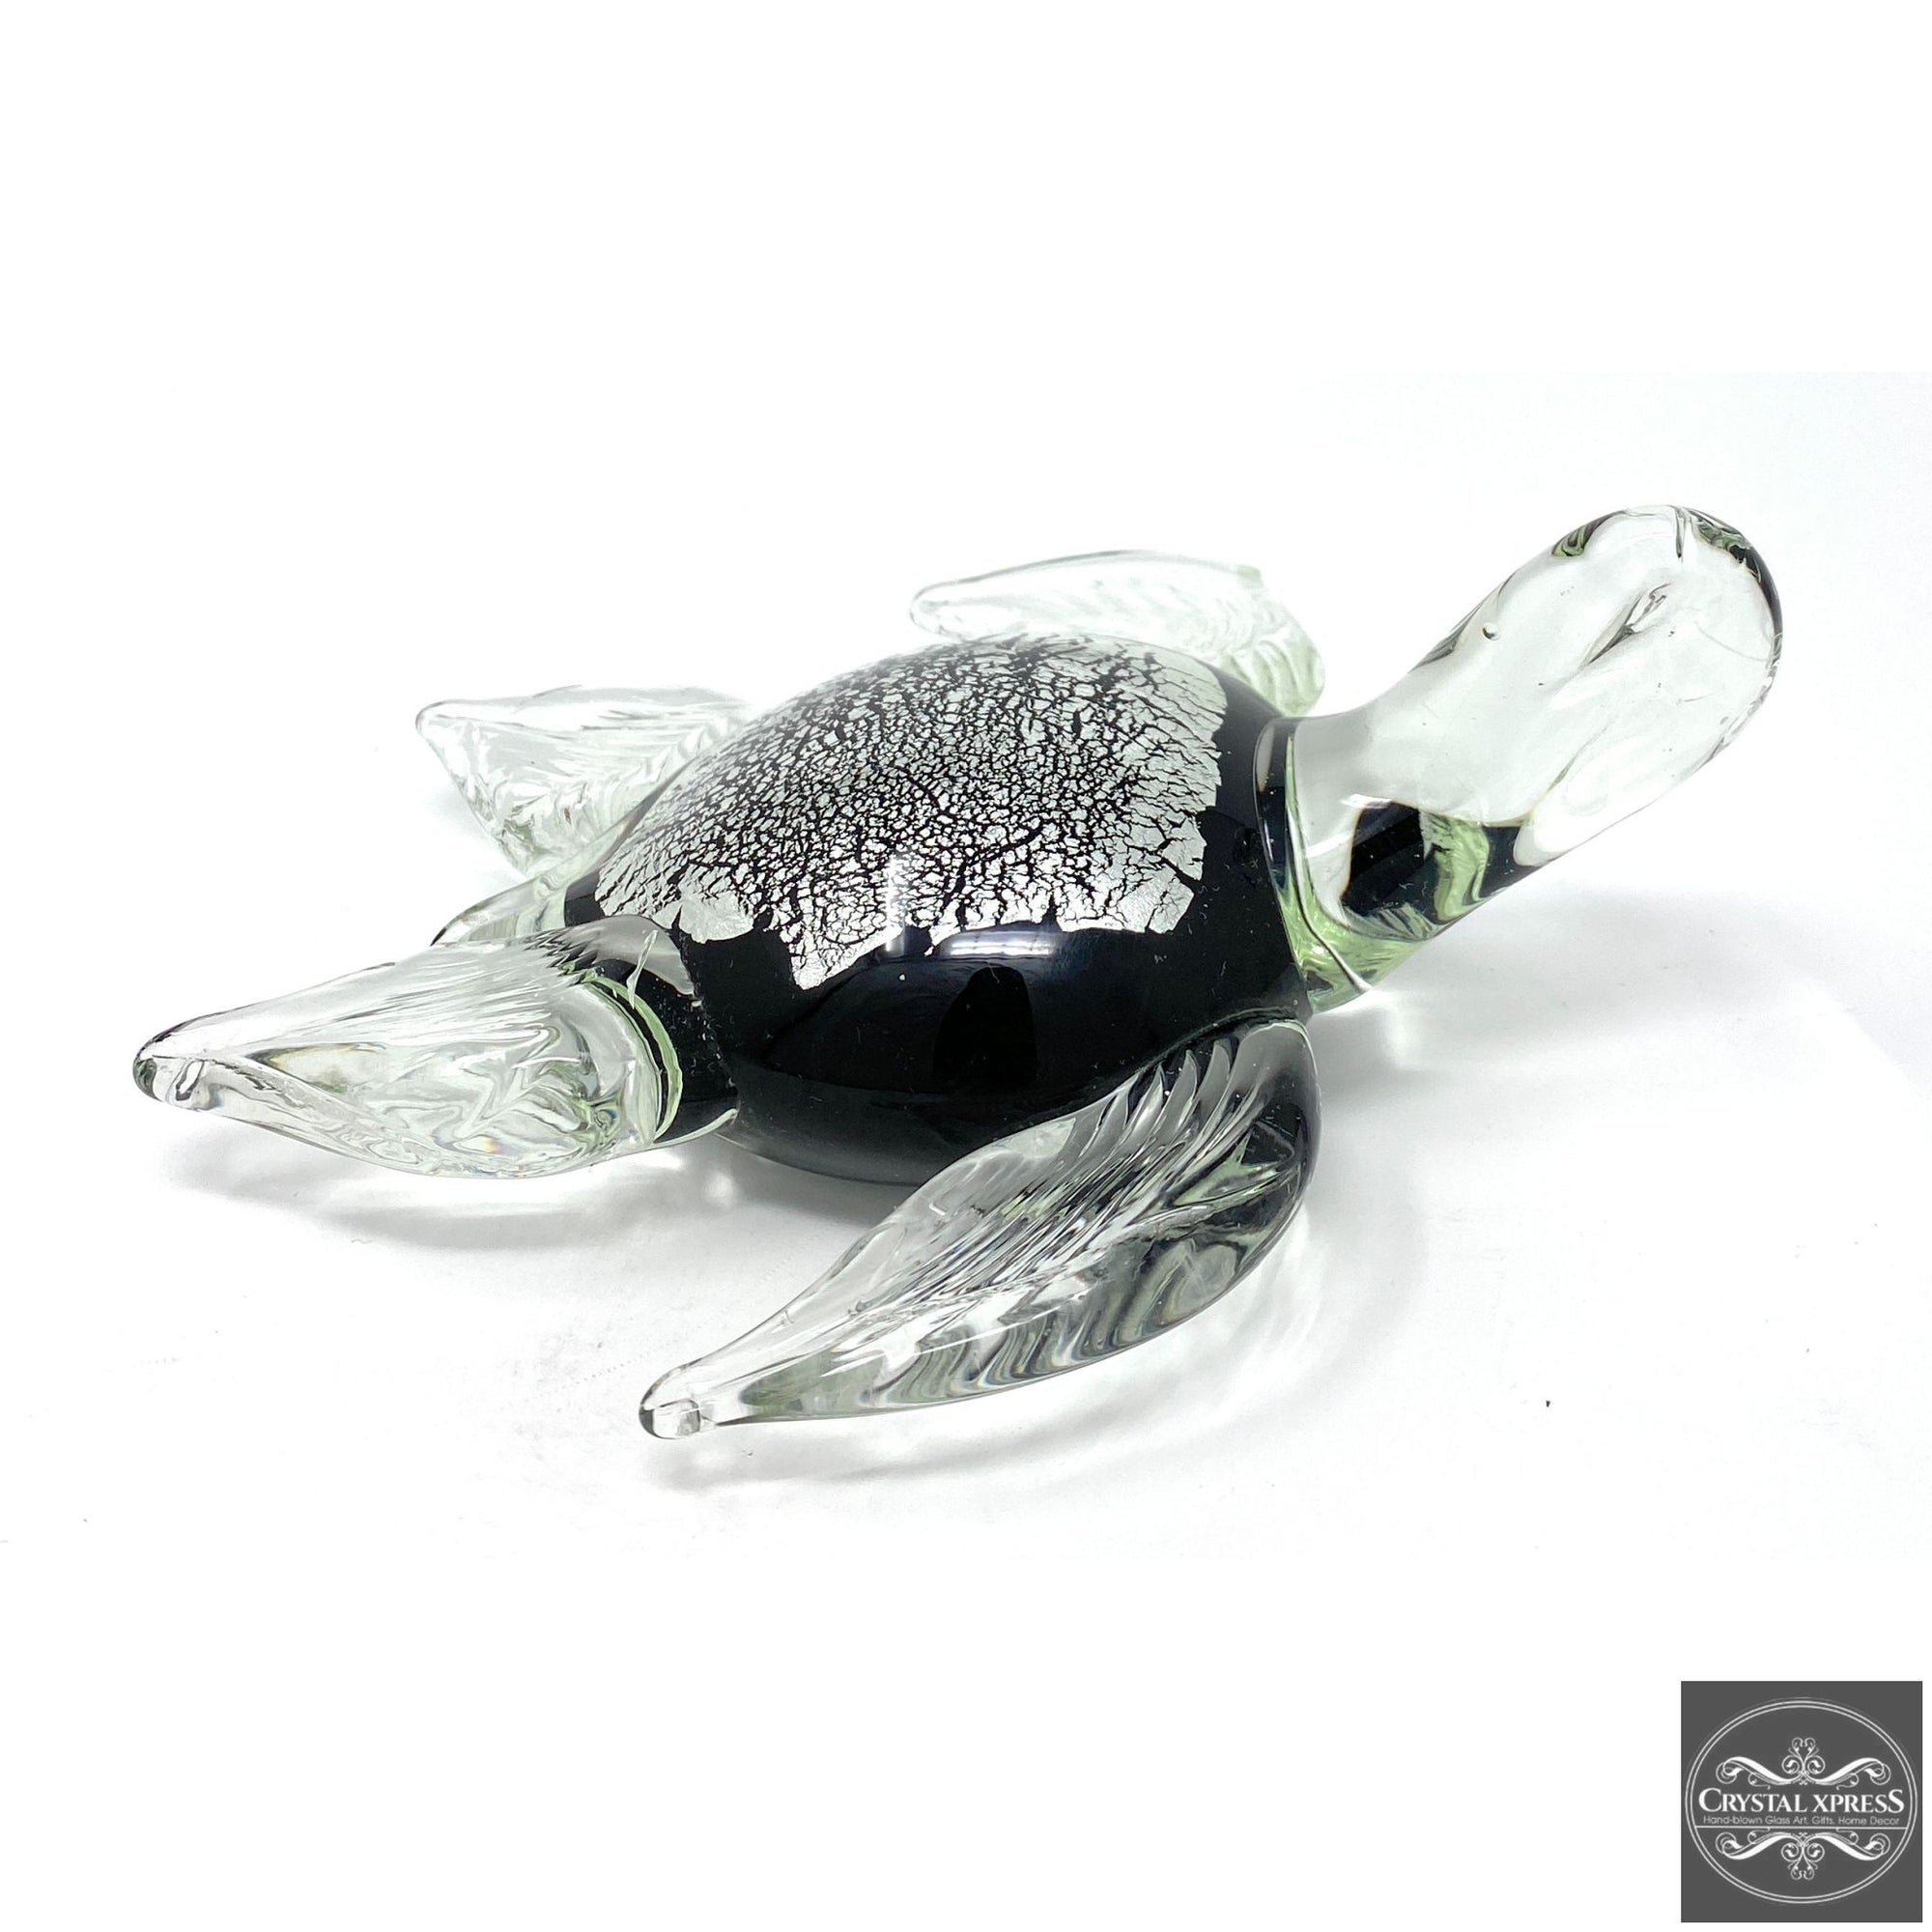 "New 7"" Hand blown Glass Sea Turtle with White and Black Spots Figurine SculptureCrystal Xpress"